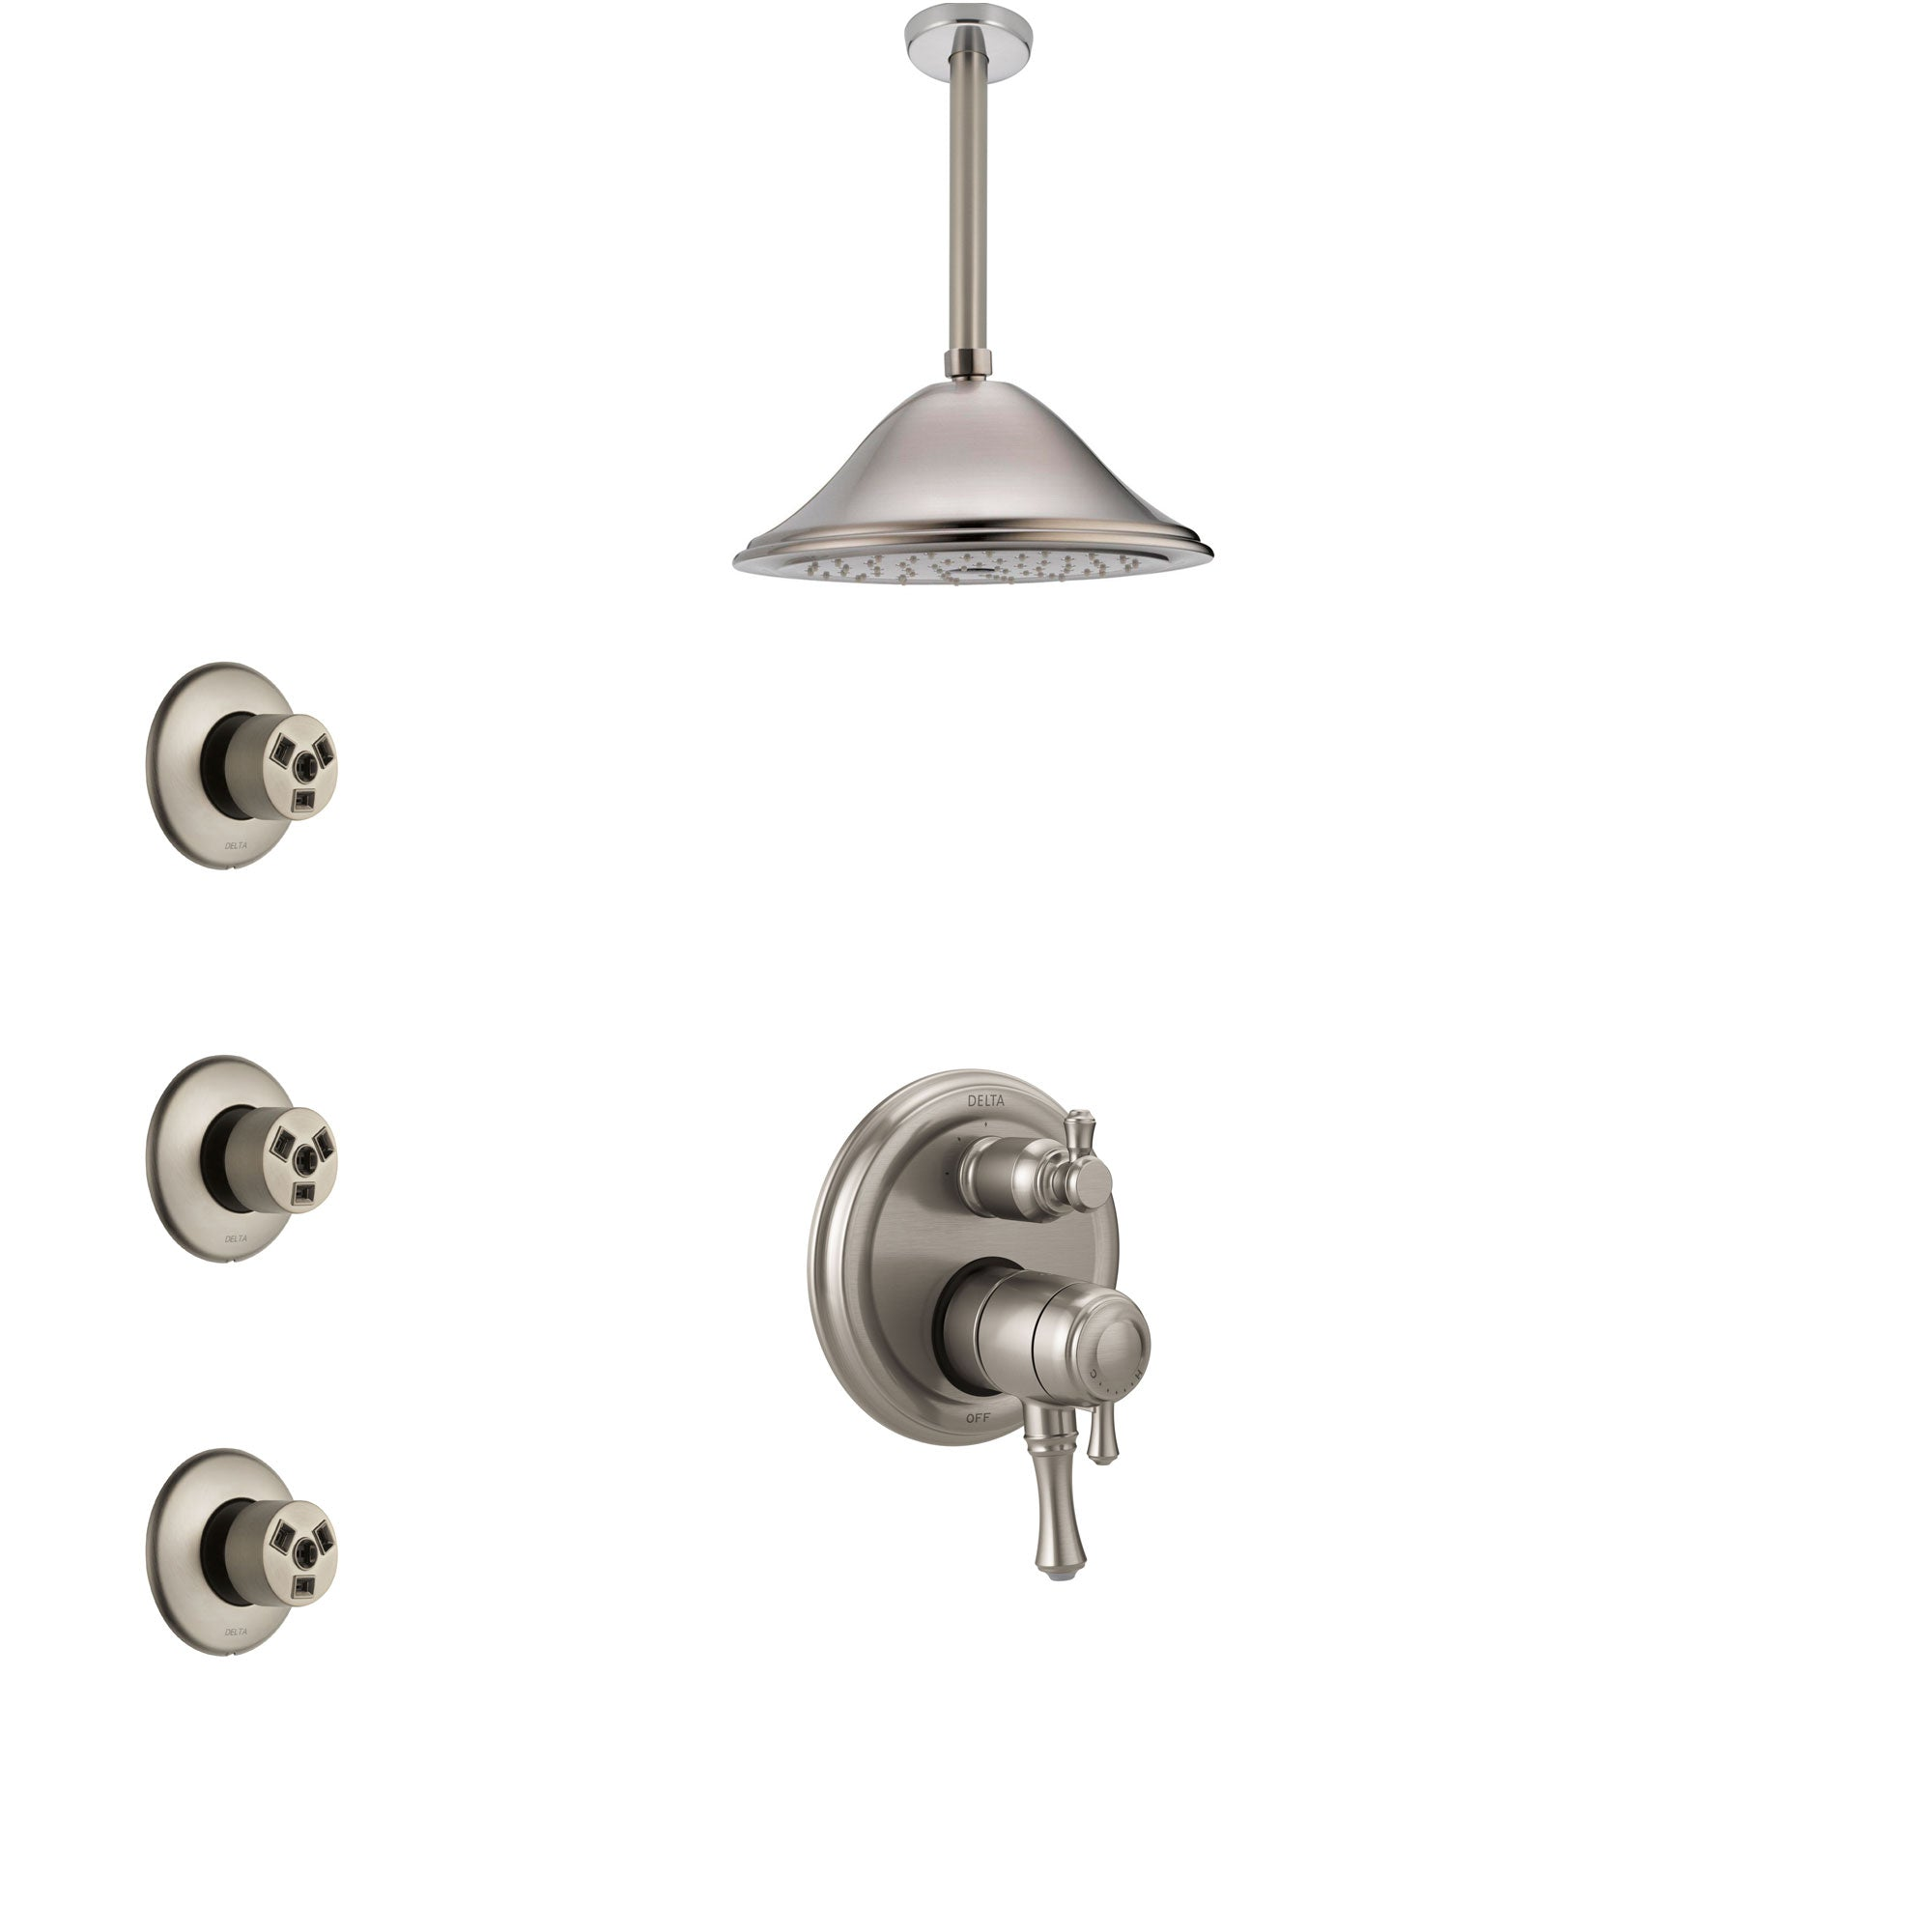 Delta Cassidy Dual Control Handle Stainless Steel Finish Shower System, Integrated Diverter, Ceiling Mount Showerhead, and 3 Body Sprays SS27897SS9